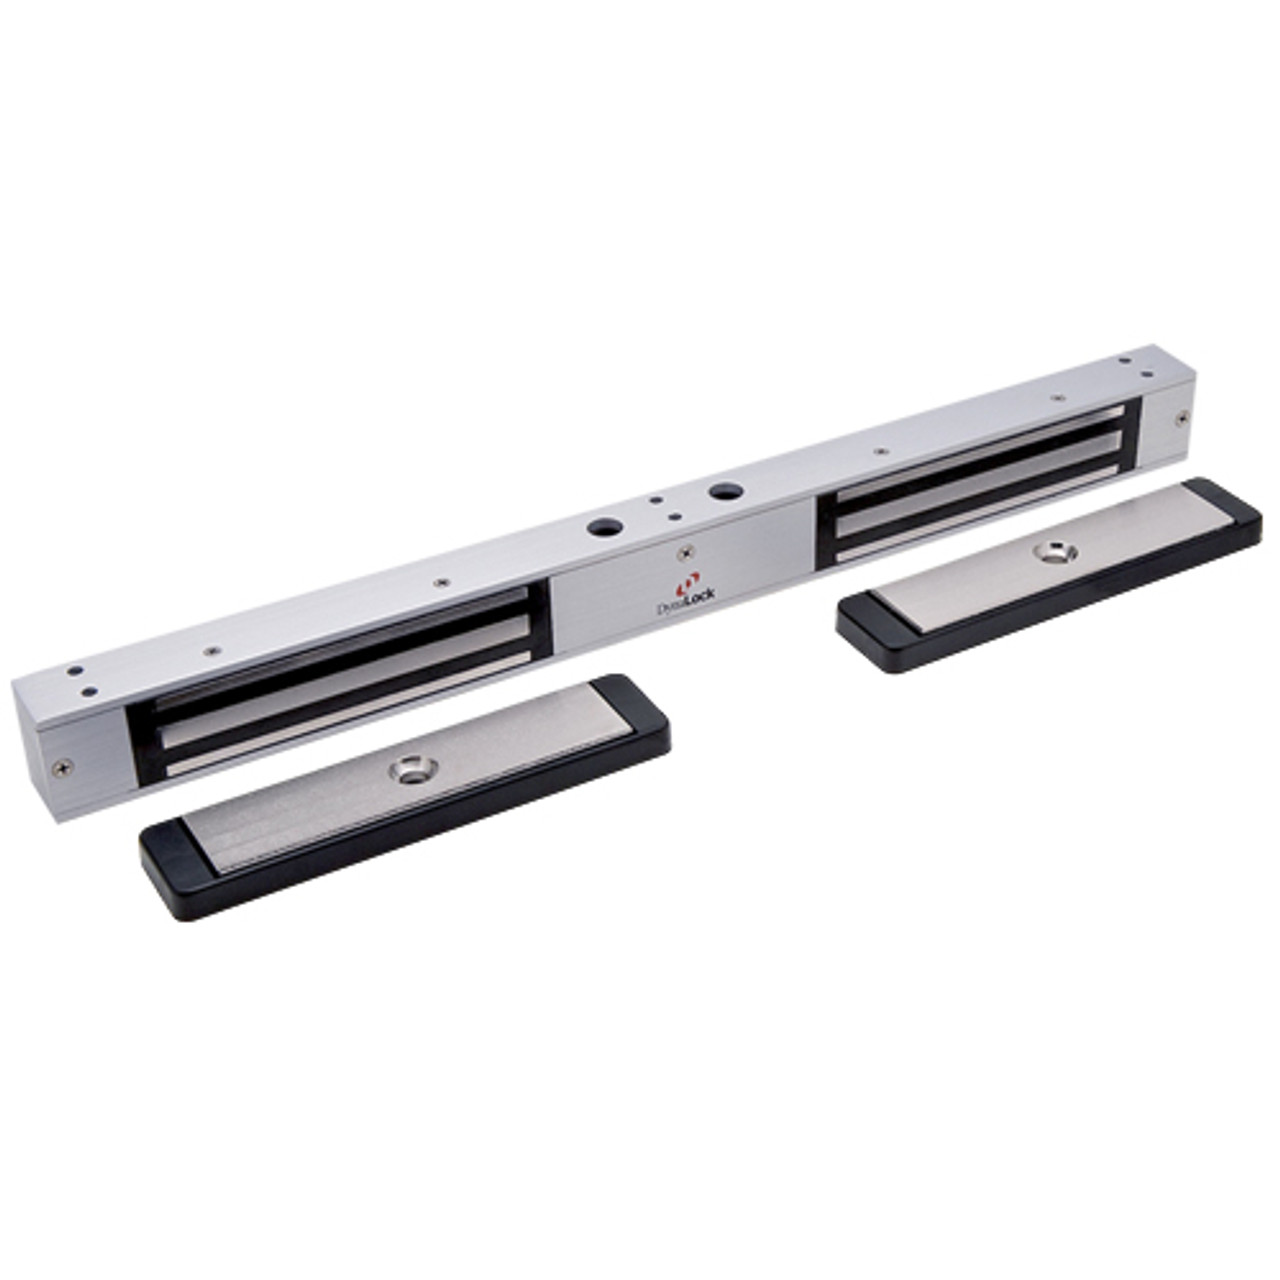 2522-US26 DynaLock 2500 Series 650 LB Mini-Mag Double Electromagnetic Lock for Outswing Door in Bright Chrome